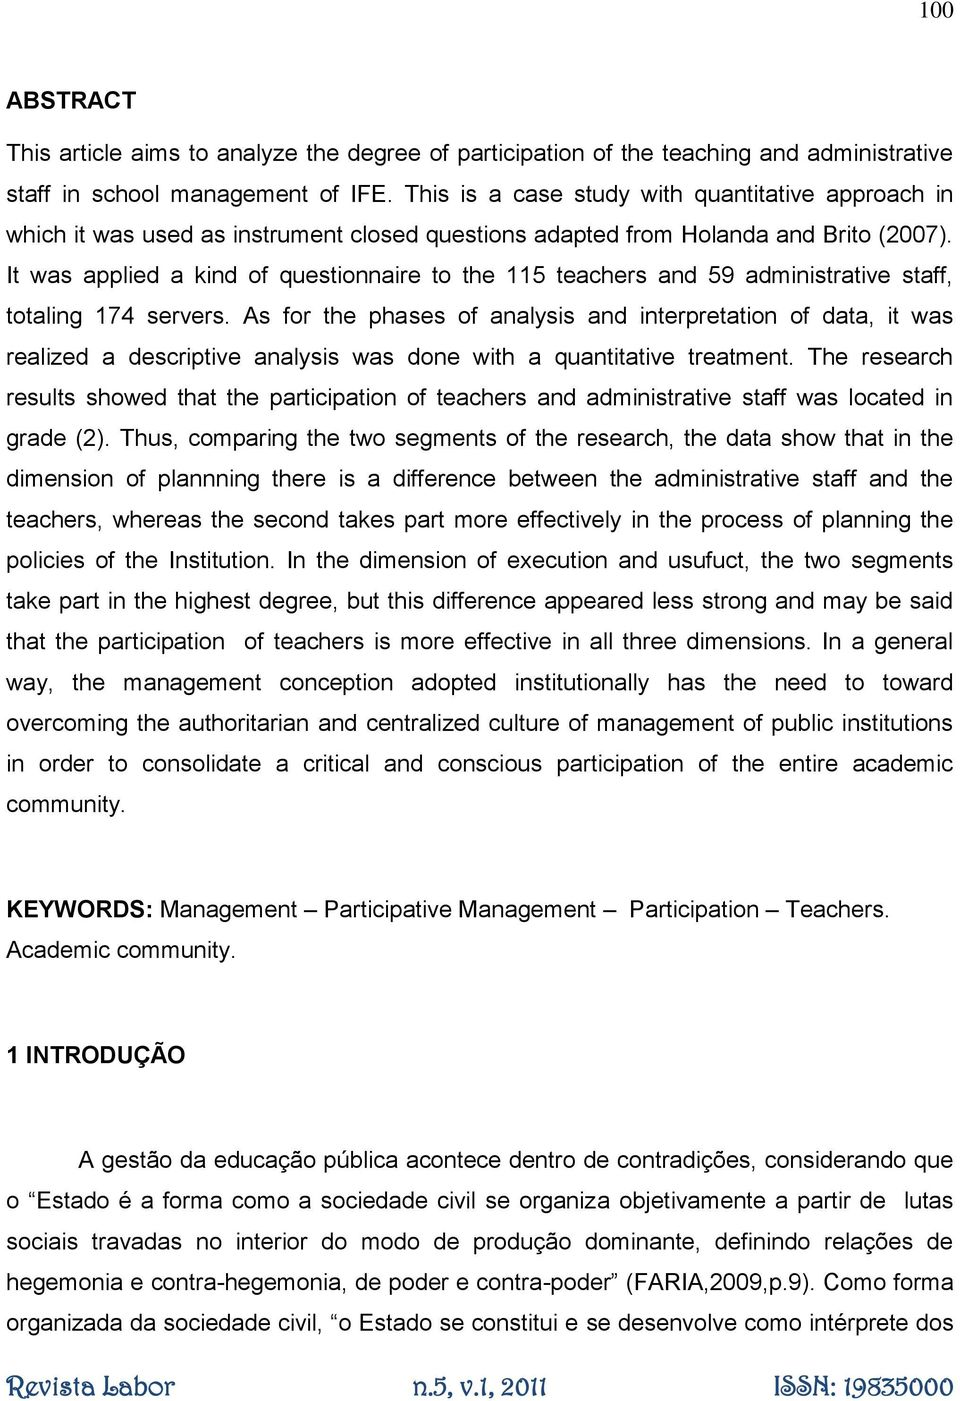 It was applied a kind of questionnaire to the 115 teachers and 59 administrative staff, totaling 174 servers.